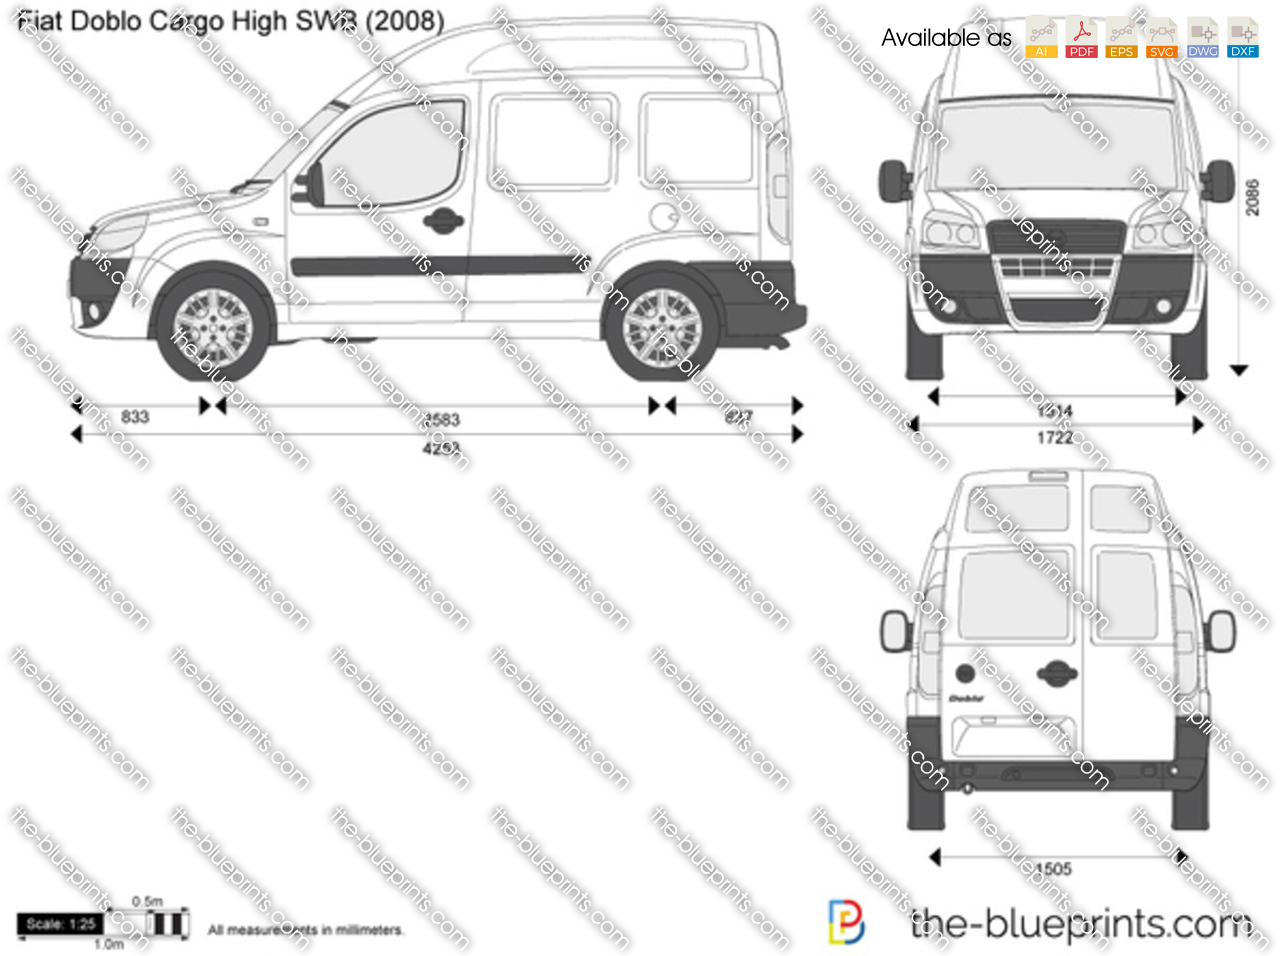 2006_fiat_doblo_cargo_high_swb the blueprints com vector drawing fiat doblo cargo high swb fiat doblo wiring diagram pdf at alyssarenee.co